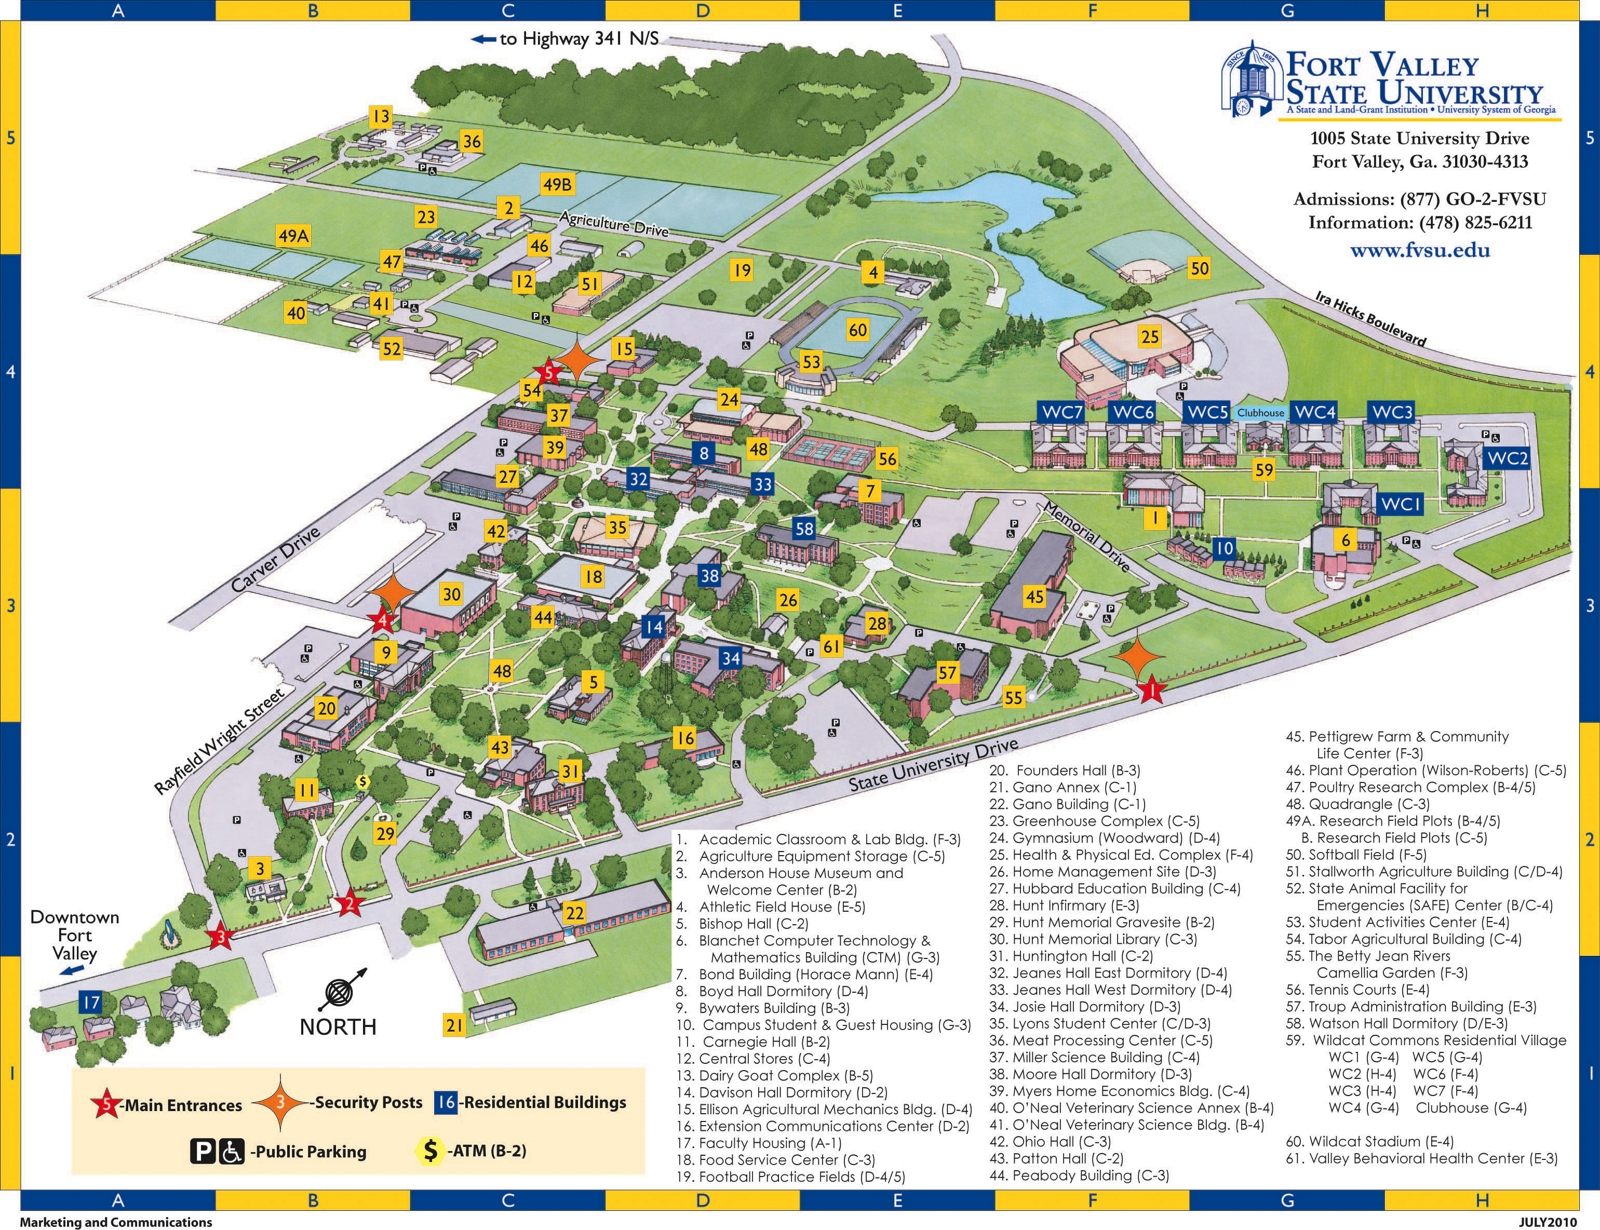 Campus Map and Building Code List